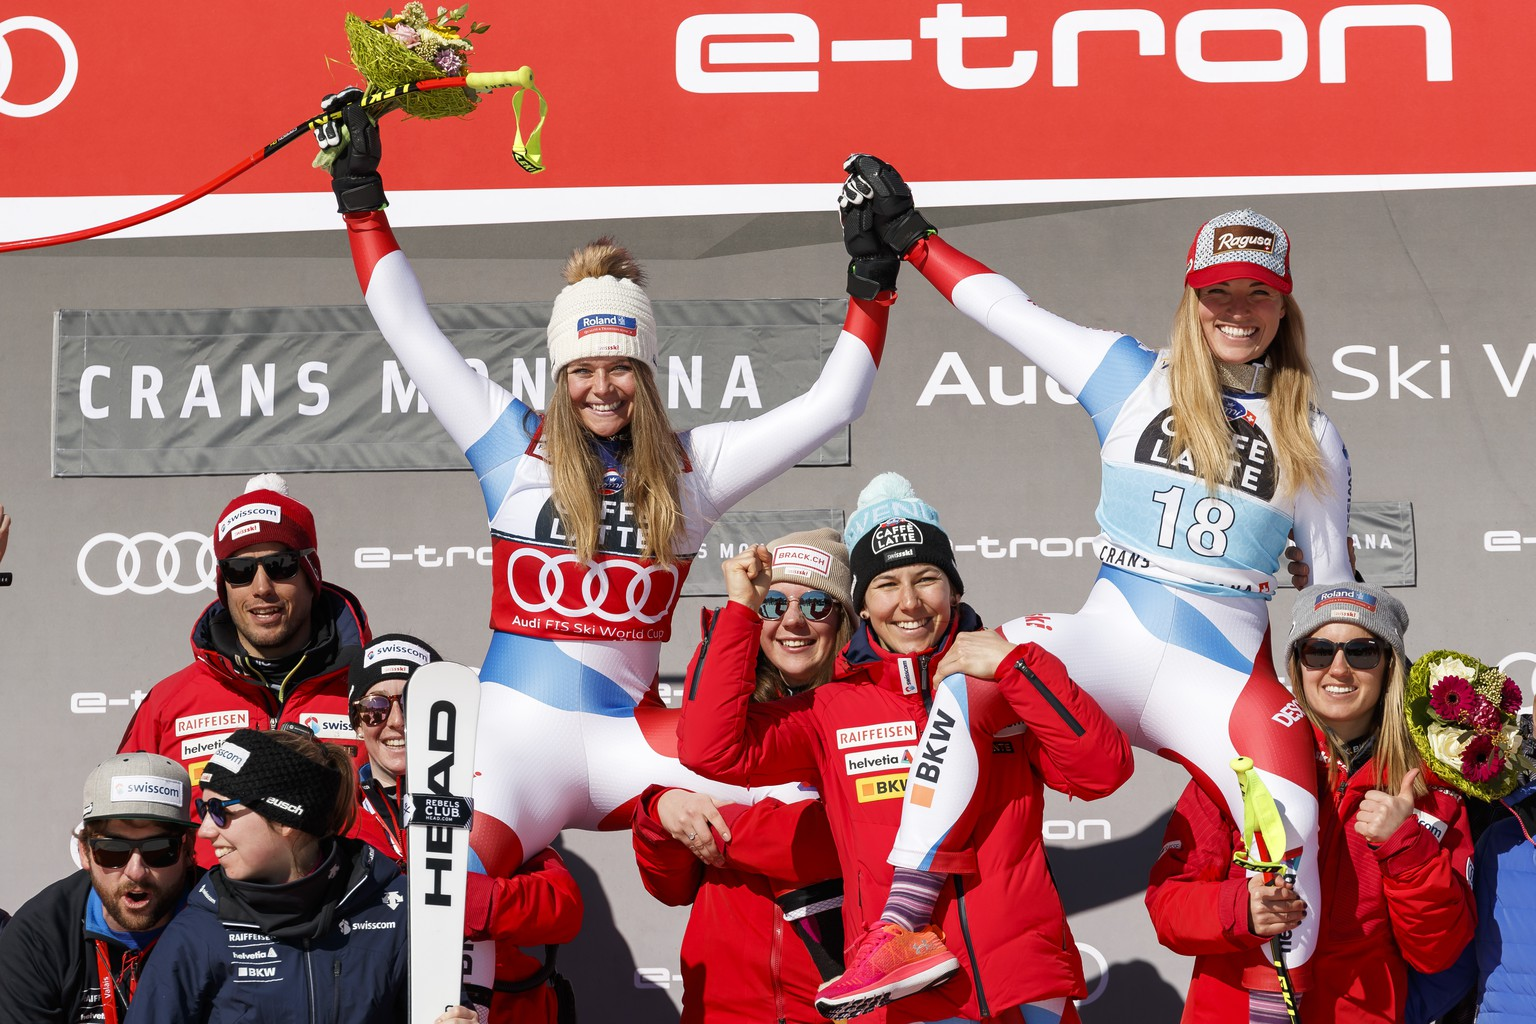 From left, Corinne Suter of Switzerland and Lara Gut-Behrami of Switzerland on the podium after the women's Downhill race of the FIS Alpine Ski World Cup season in Crans-Montana, Switzerland, Friday, February 21, 2020. (KEYSTONE/Cyril Zingaro)